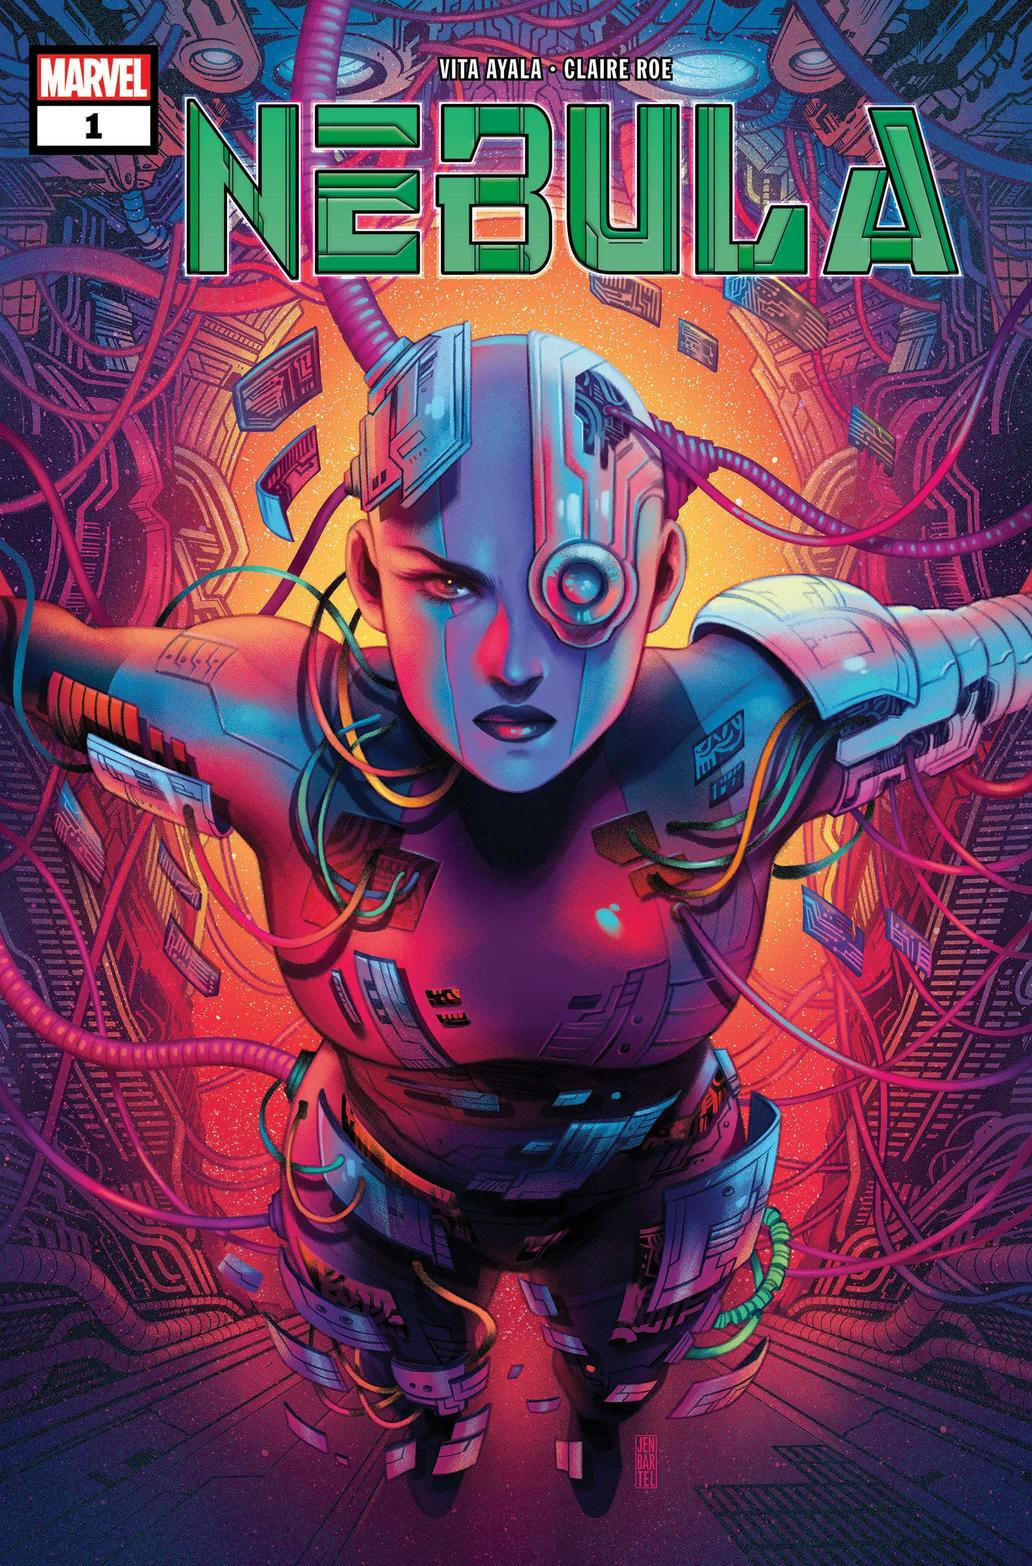 Comics Come Home 2020.Nebula Gets Her Own Limited Series In February 2020 Marvel